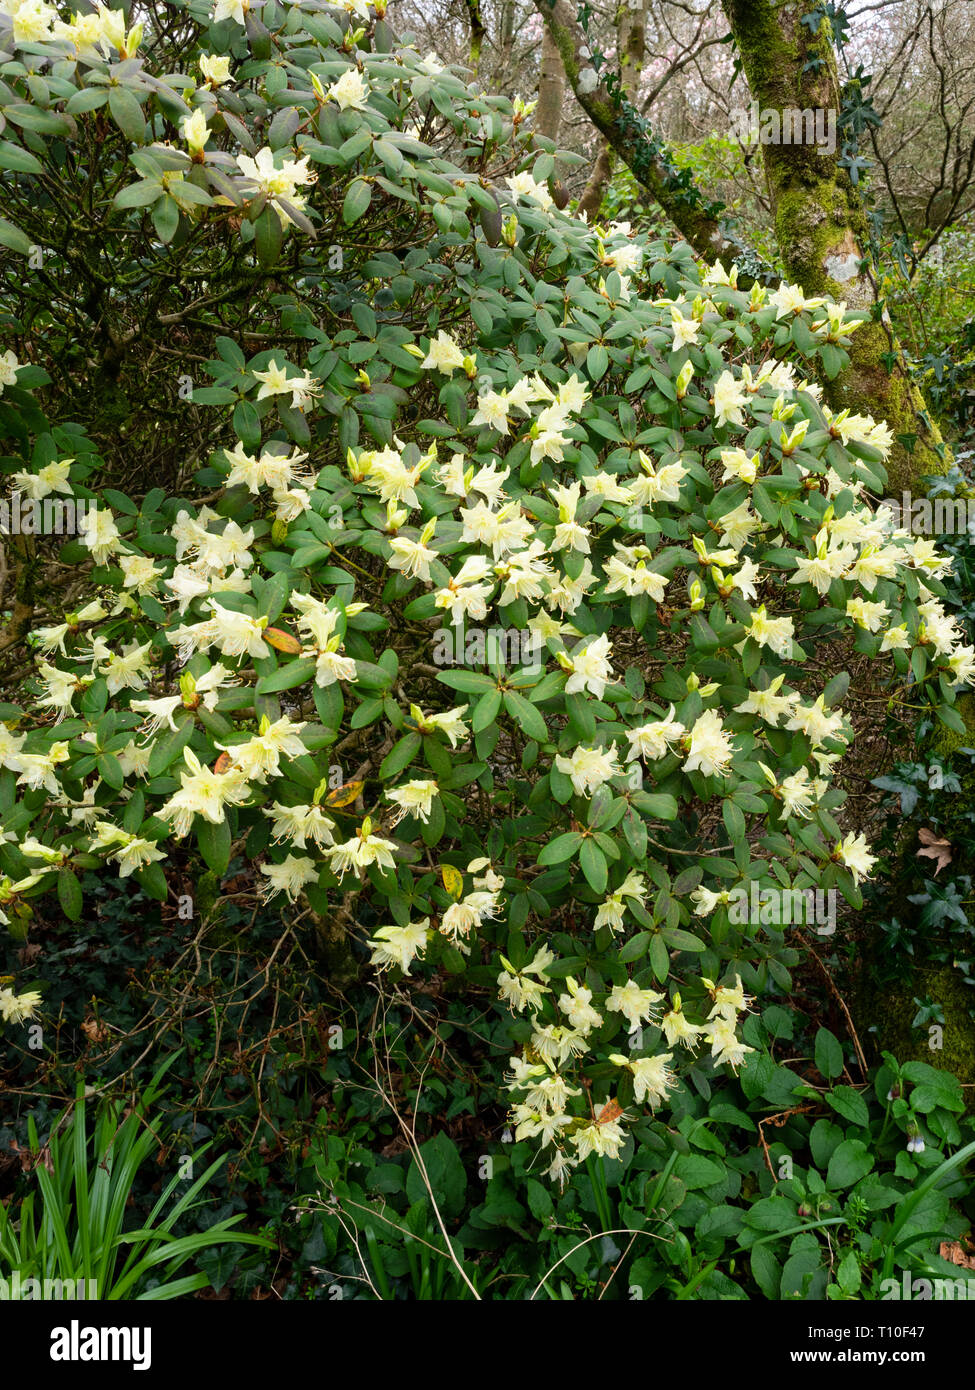 Pale Yellow Early Spring Flowers Of The Compact Evergreen Shrub